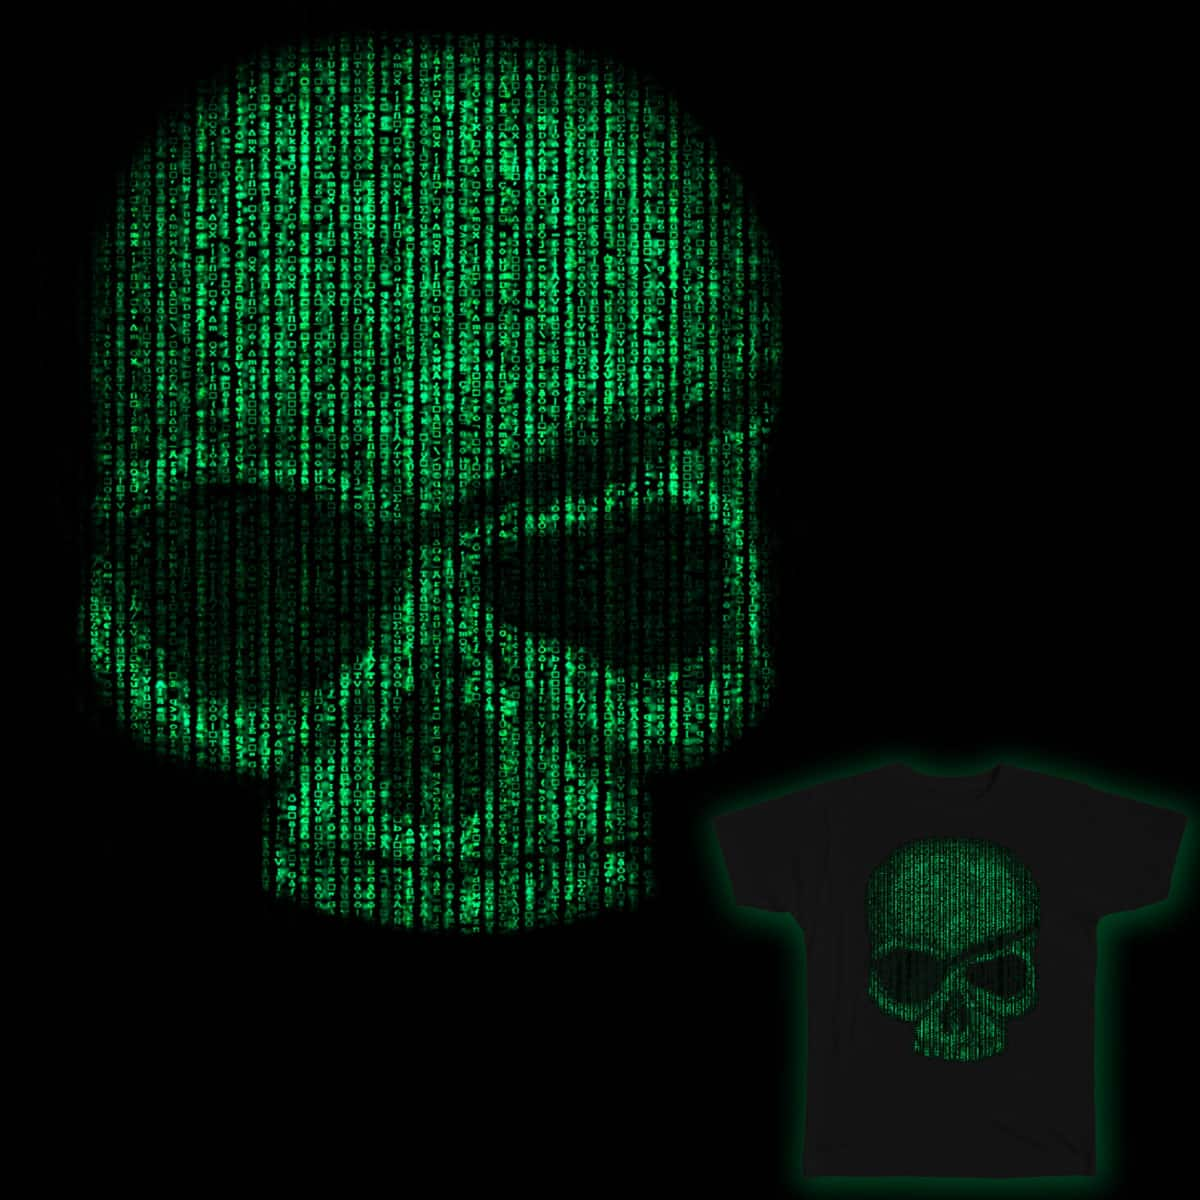 Digital Piracy by lazysundave on Threadless